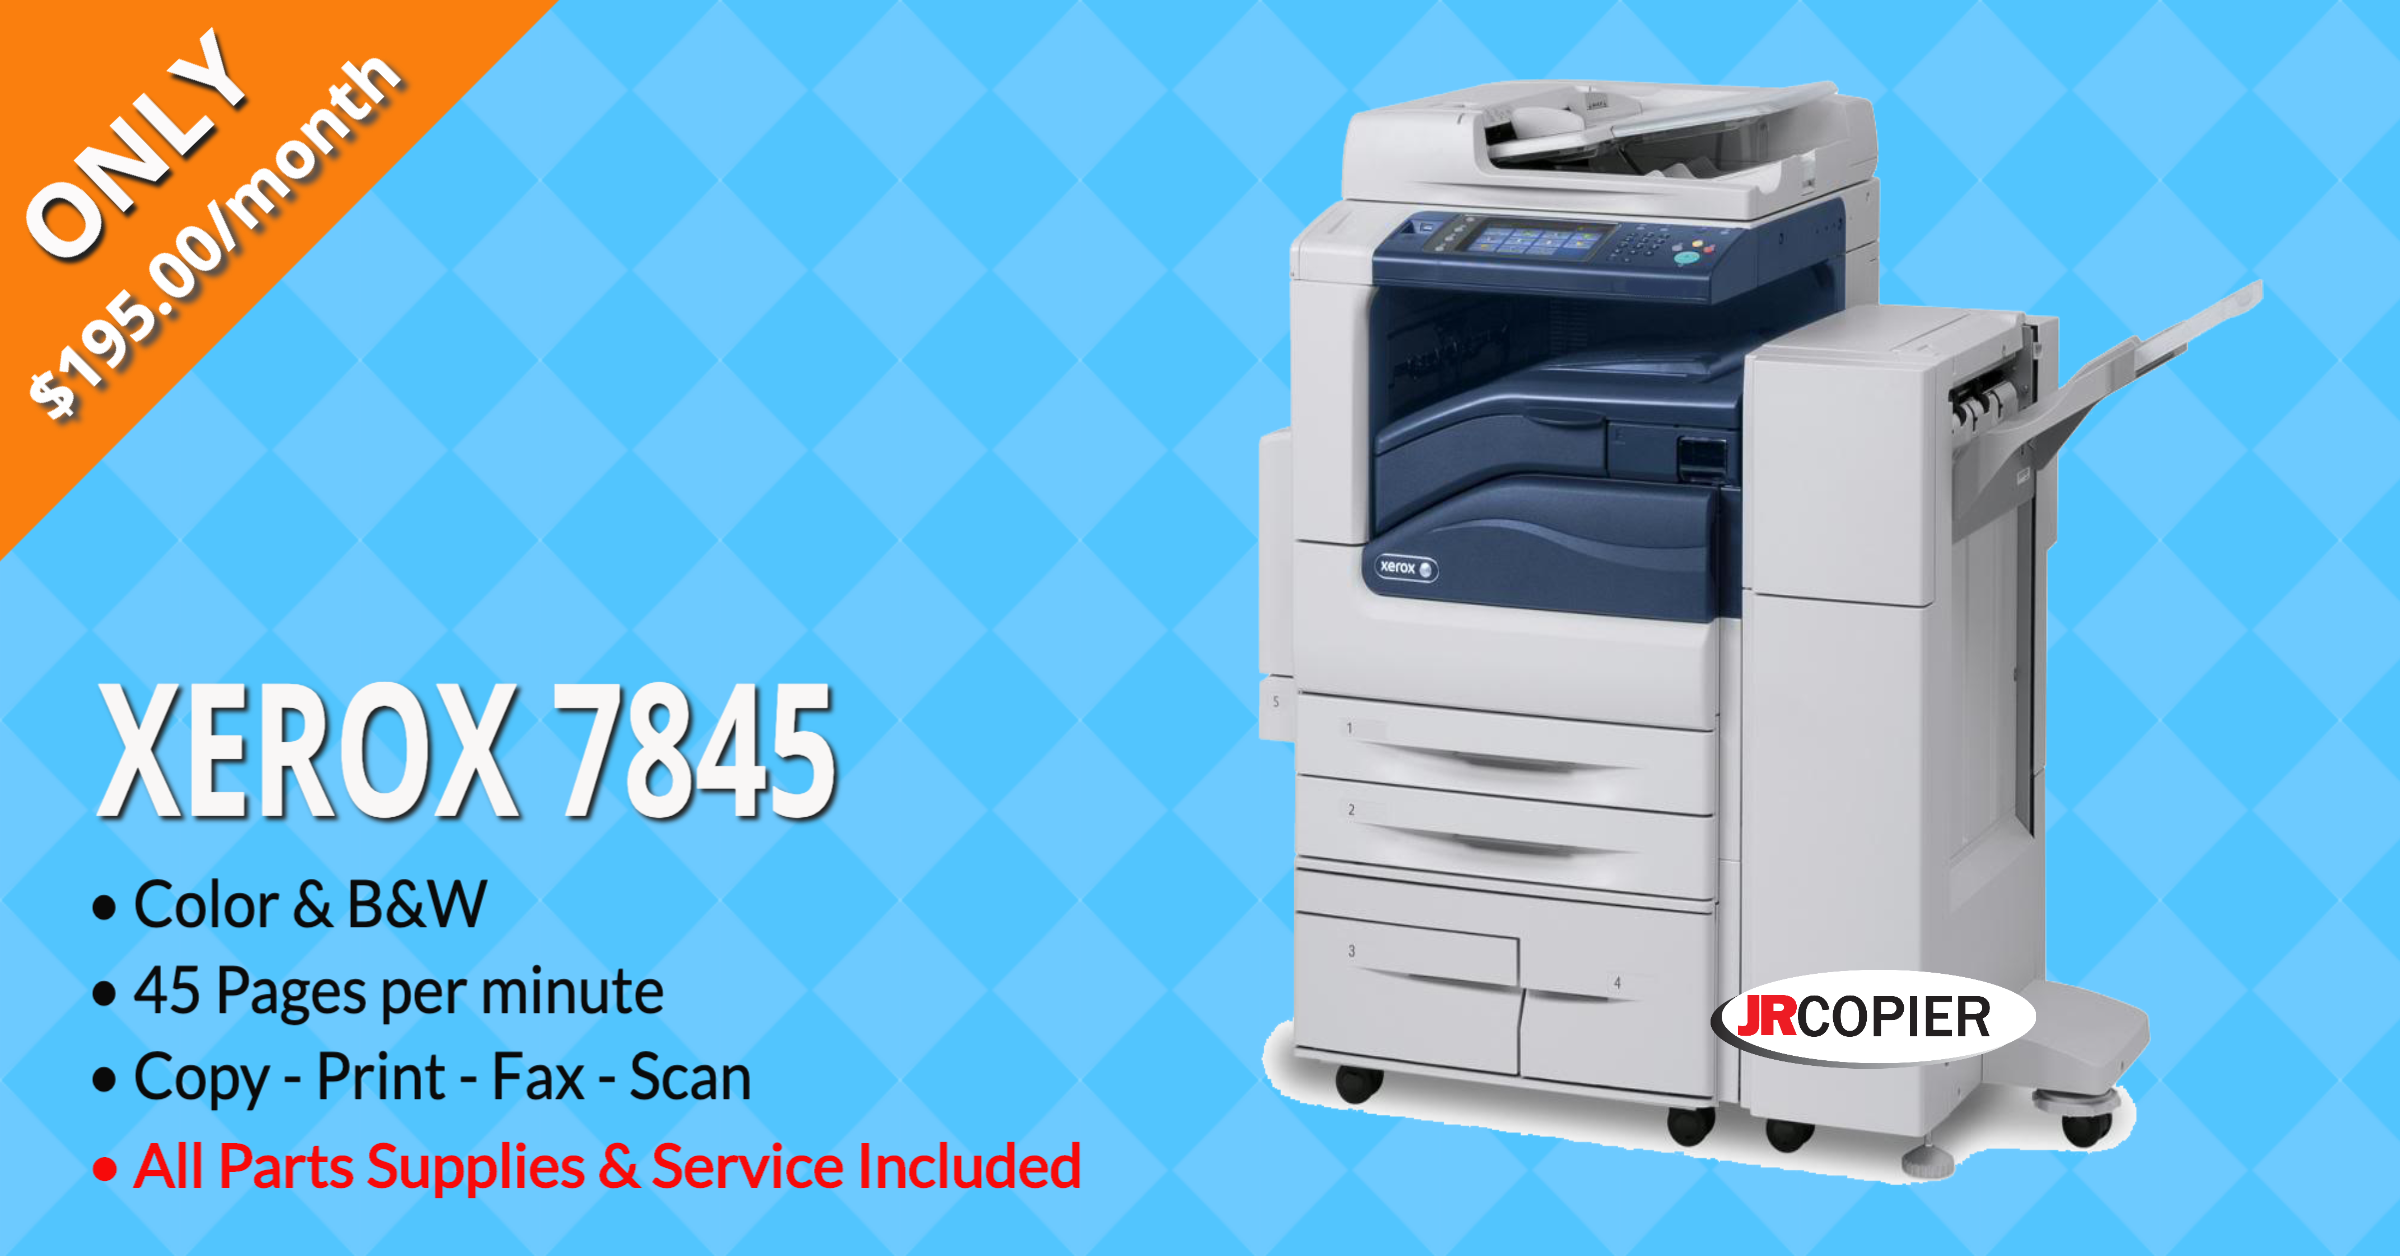 Copy Machine 10514, 10520, 10535, 10547, 10549, 10562, 10567, 10588, 10598